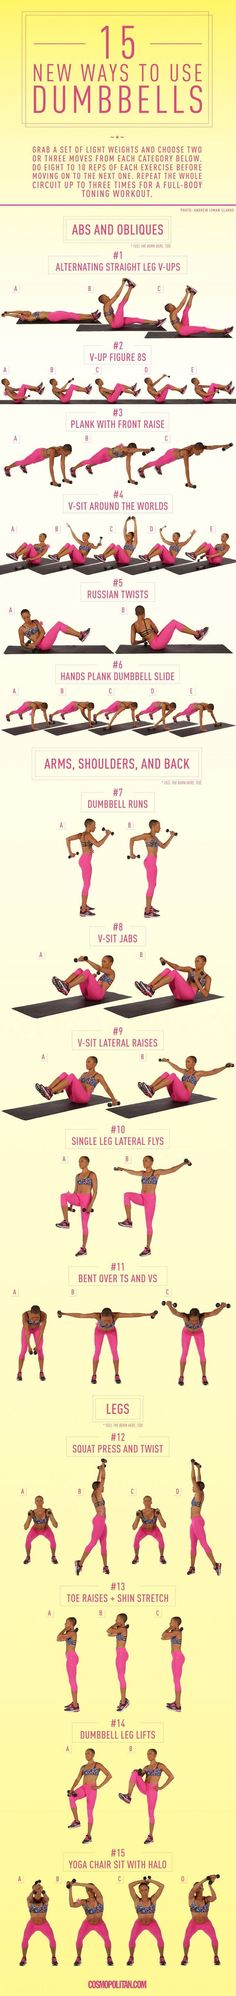 New Ways to Use Dumbbells Build a DIY dumbbell workout that targets the body parts you want to tone.Build a DIY dumbbell workout that targets the body parts you want to tone. Sport Fitness, Fitness Diet, Health Fitness, Fitness Plan, Men Health, Group Fitness, Muscle Fitness, Gain Muscle, Build Muscle